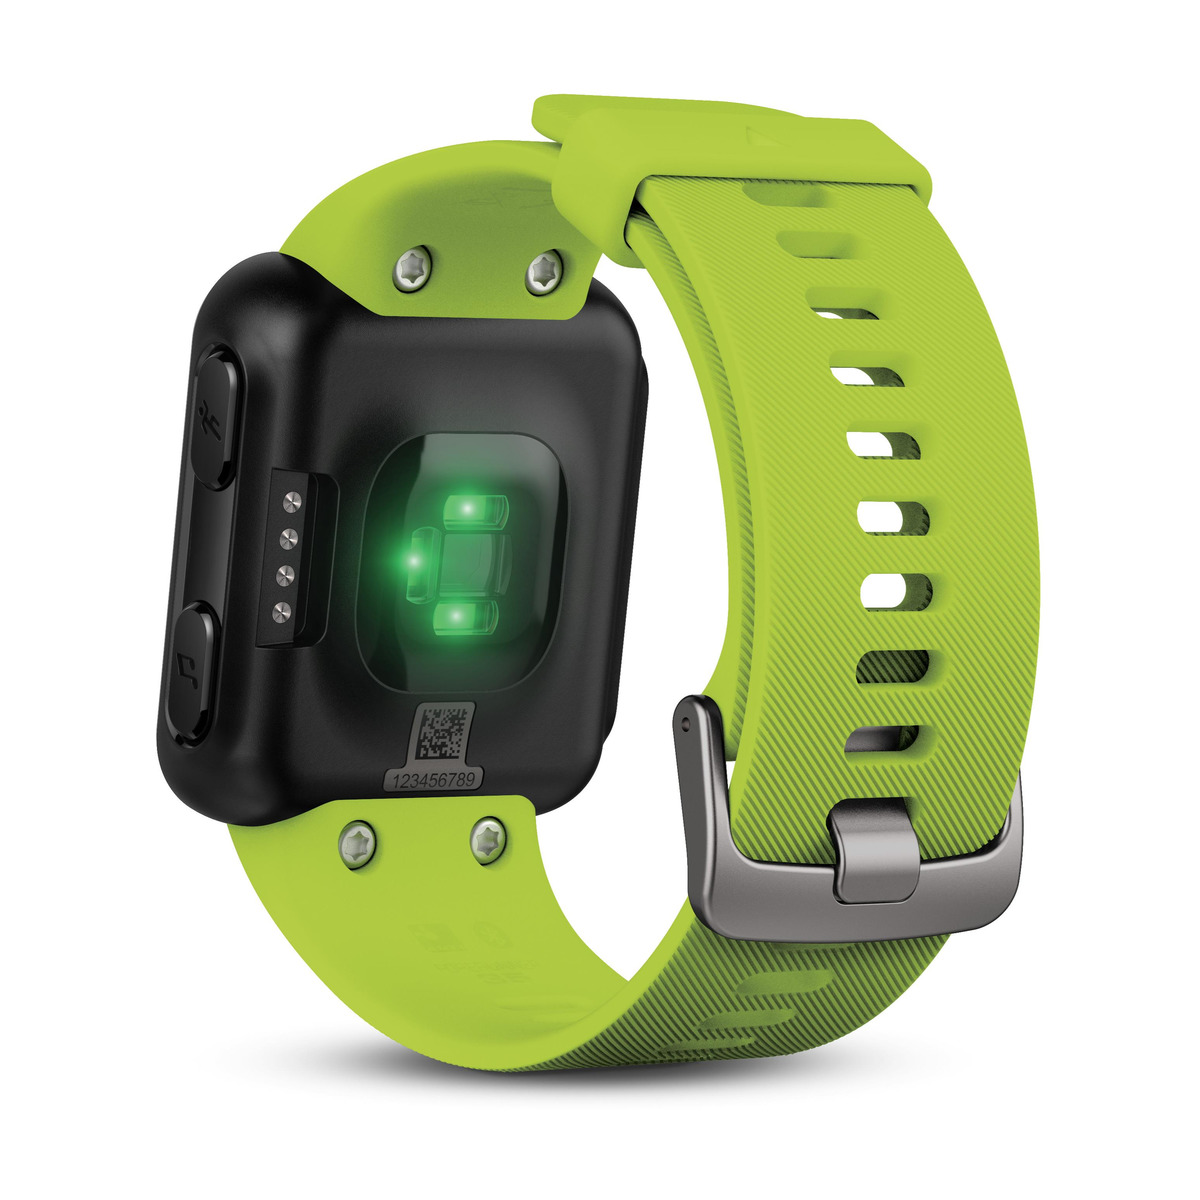 GARMIN FORERUNNER USB LADEKLIPSKABEL Power.no